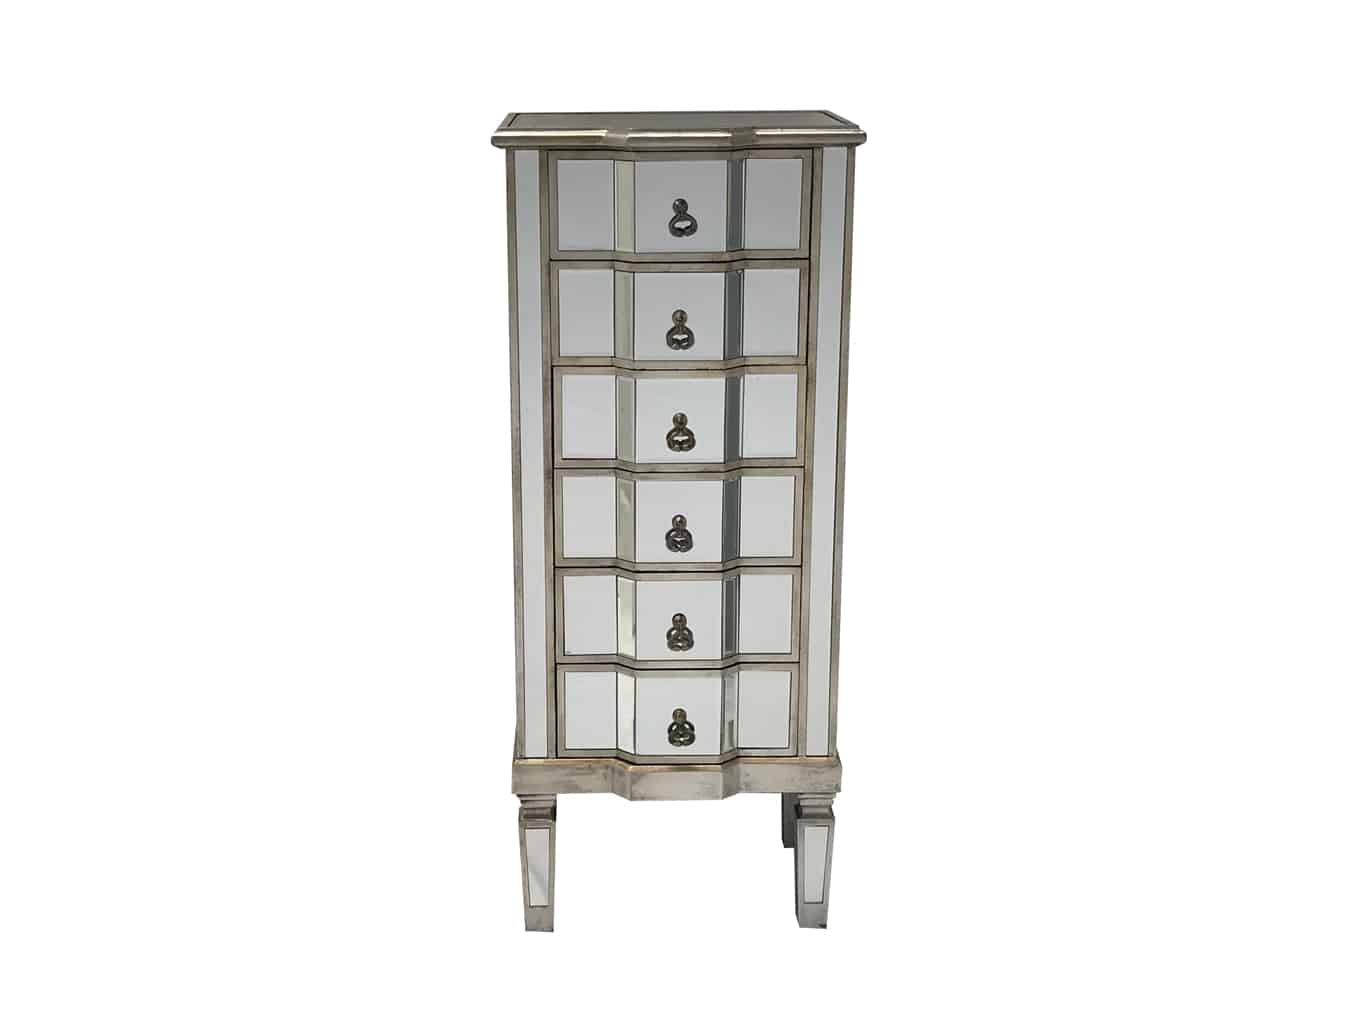 Charleston Mirrored Tallboy Chest with 6 Drawers, drop ring drawer pulls, wood and mirror, antiqued silver finish.